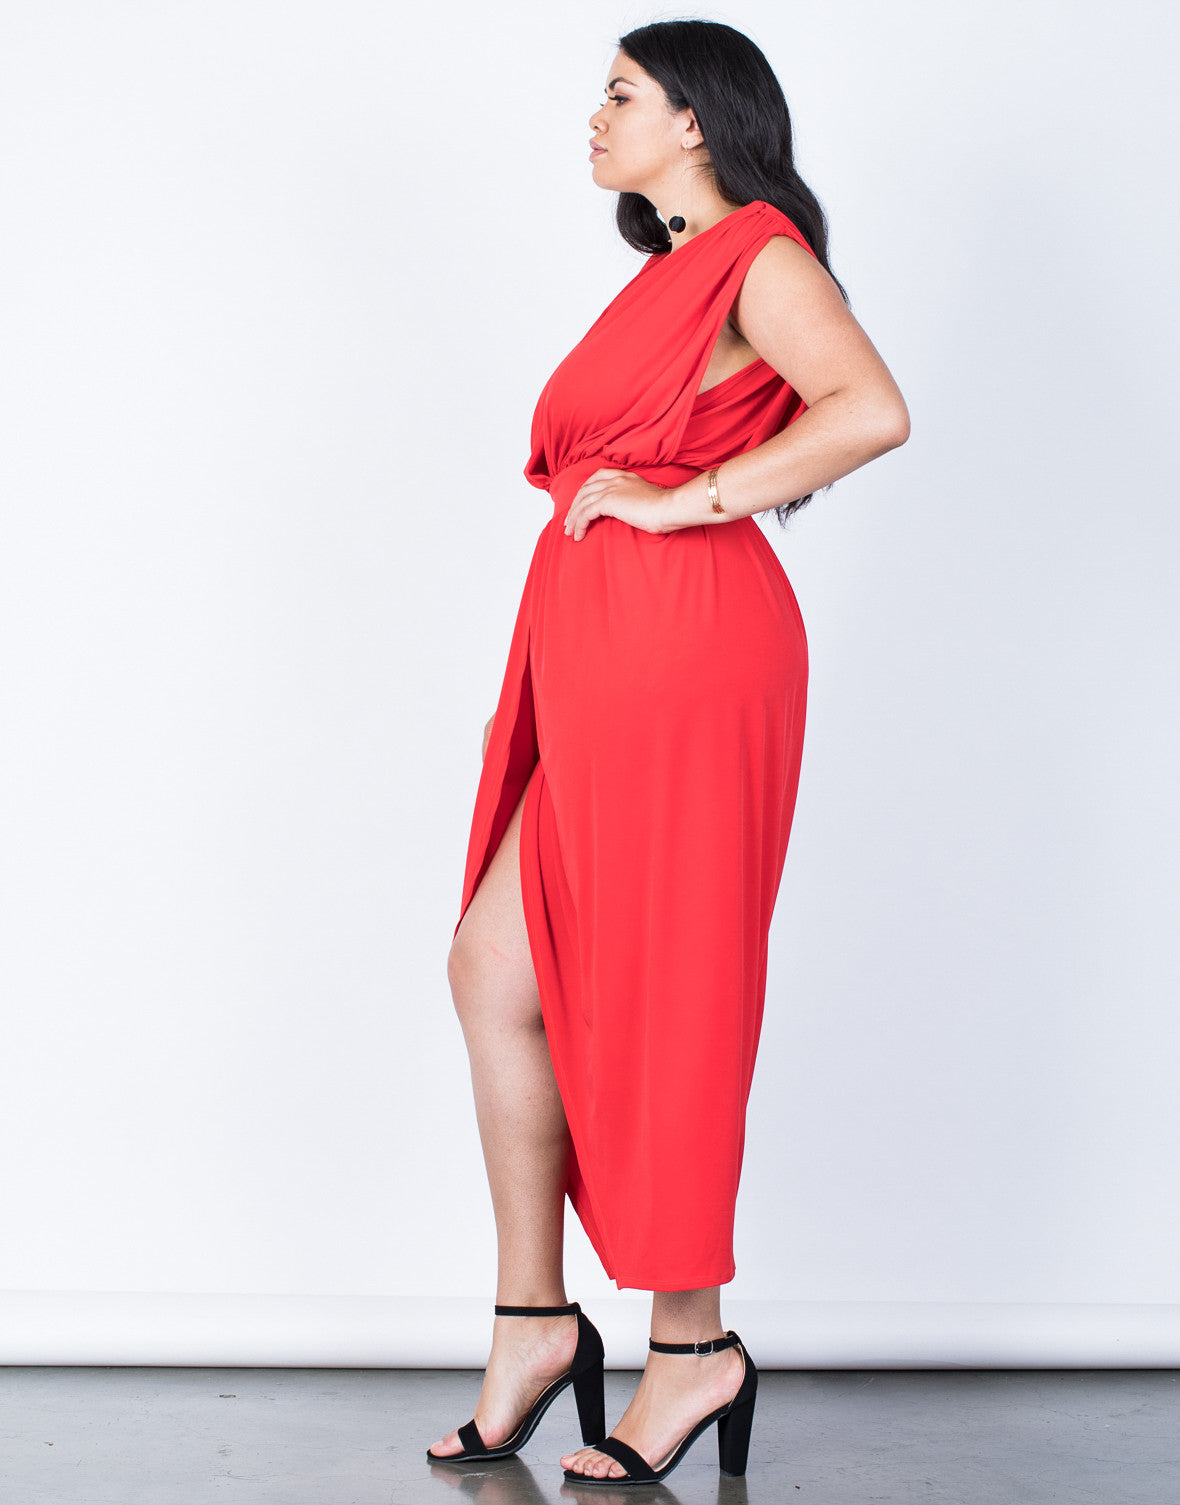 Plus Size Lady in Red Dress